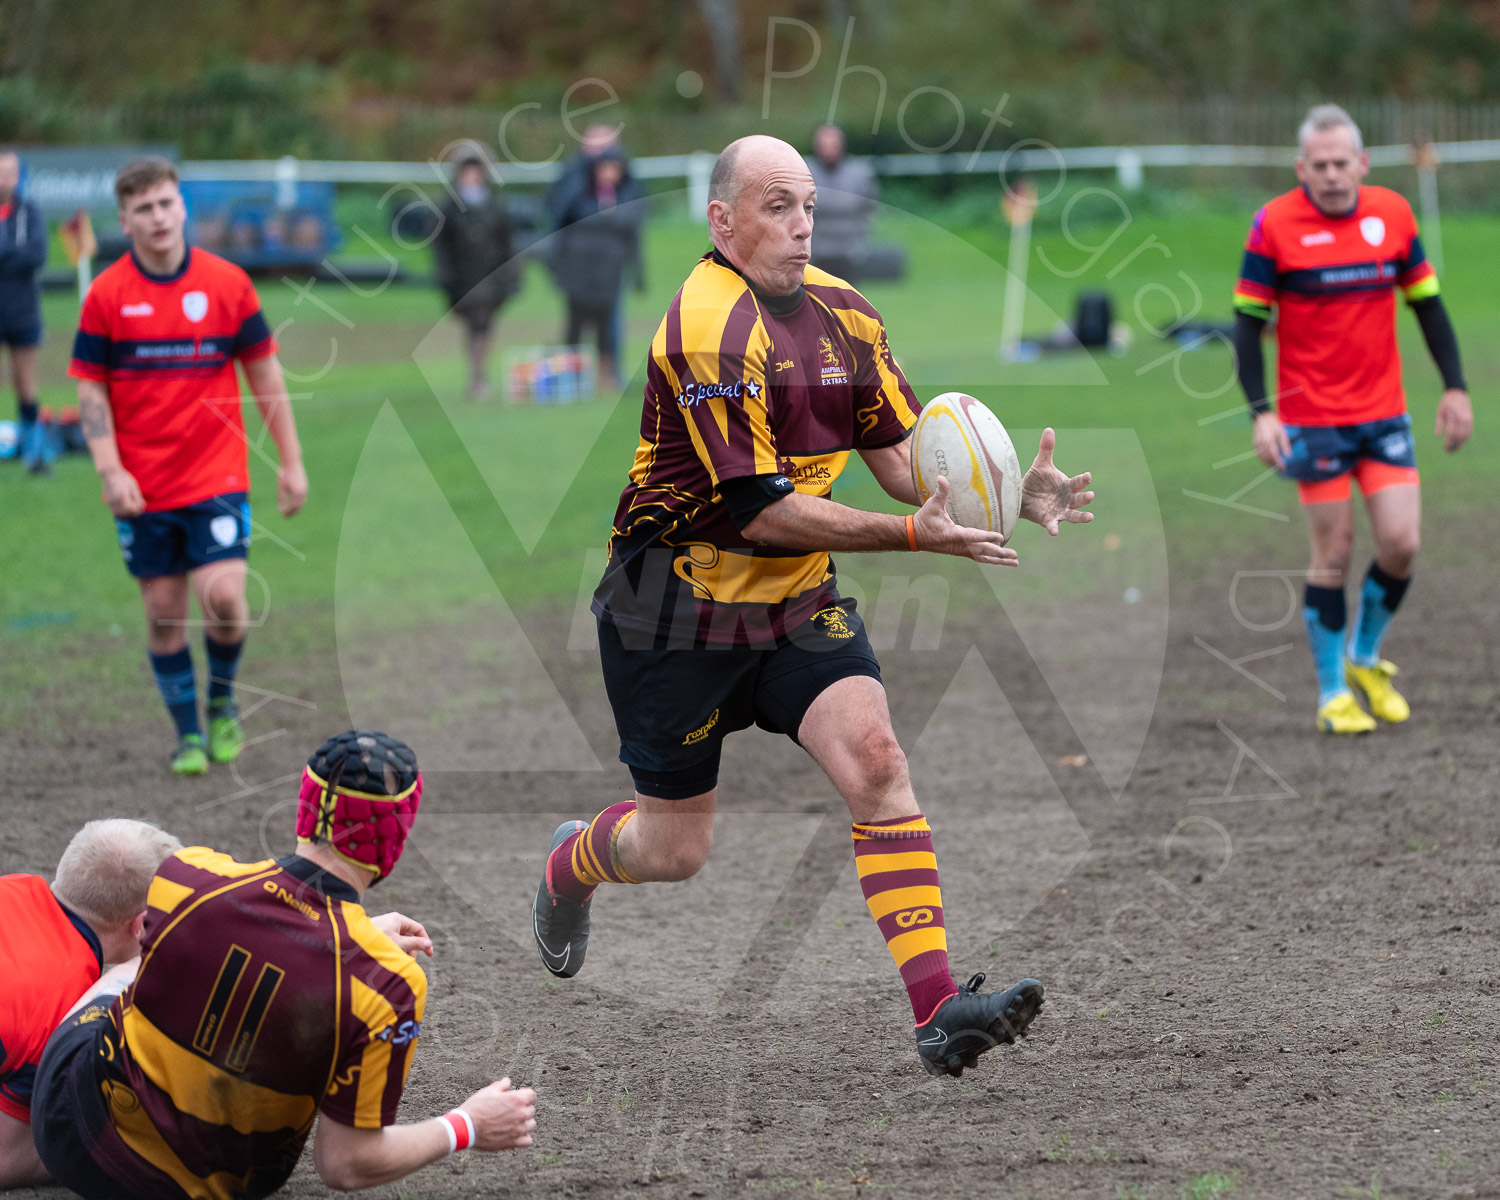 20181027 Amp Extras vs St Neots 2nd XV #2219